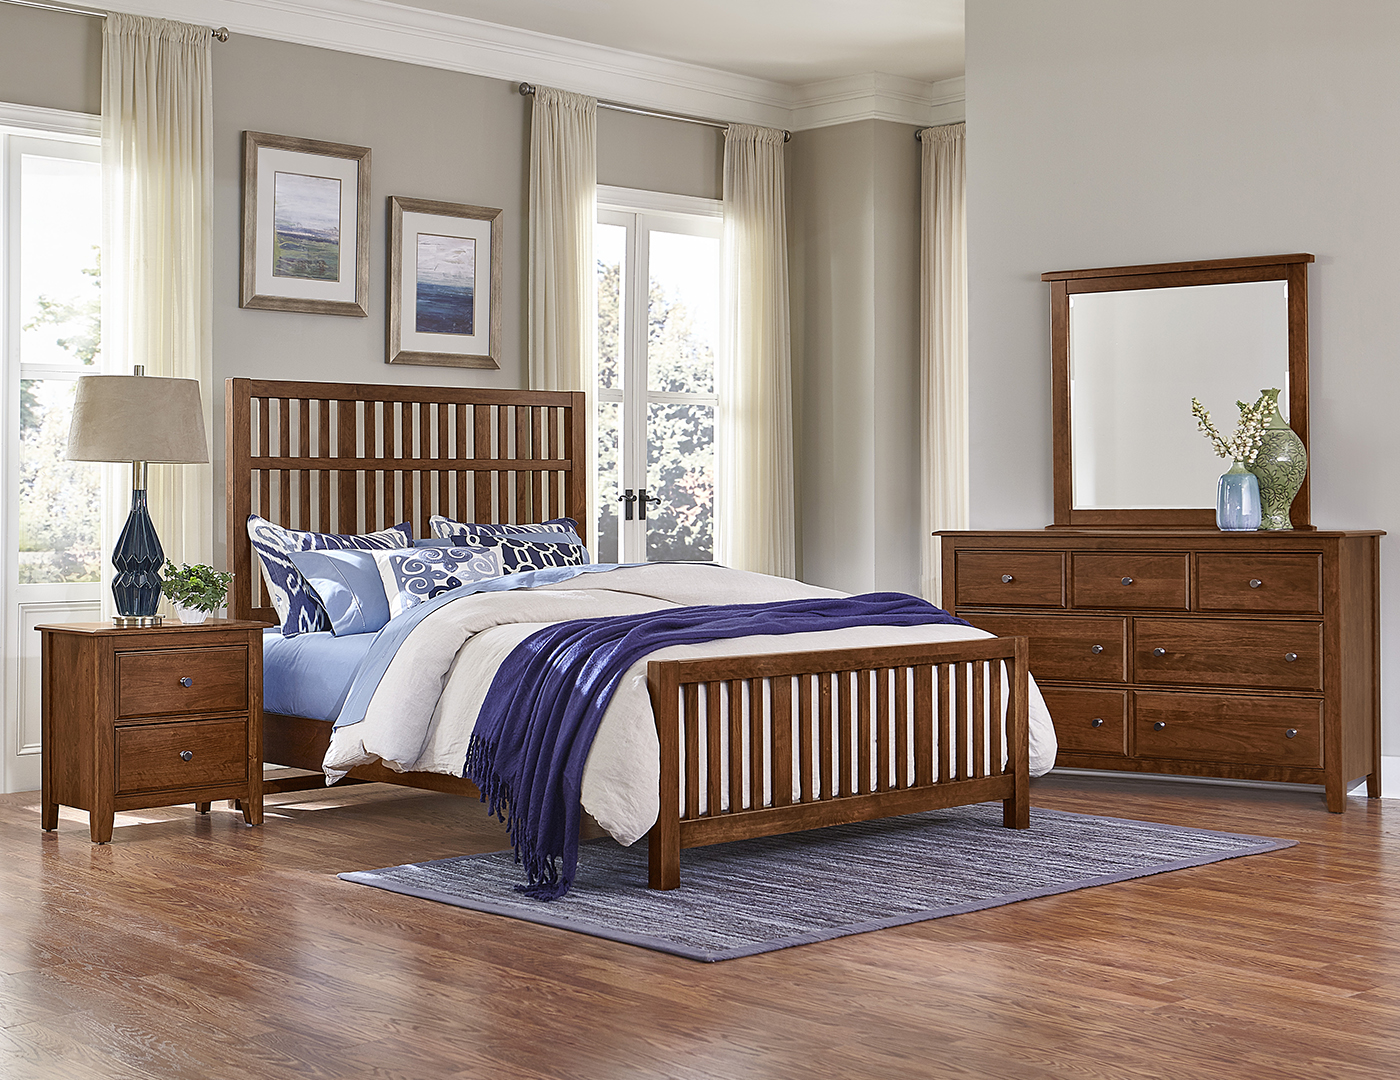 Artisan Choices King Craftsman Bed